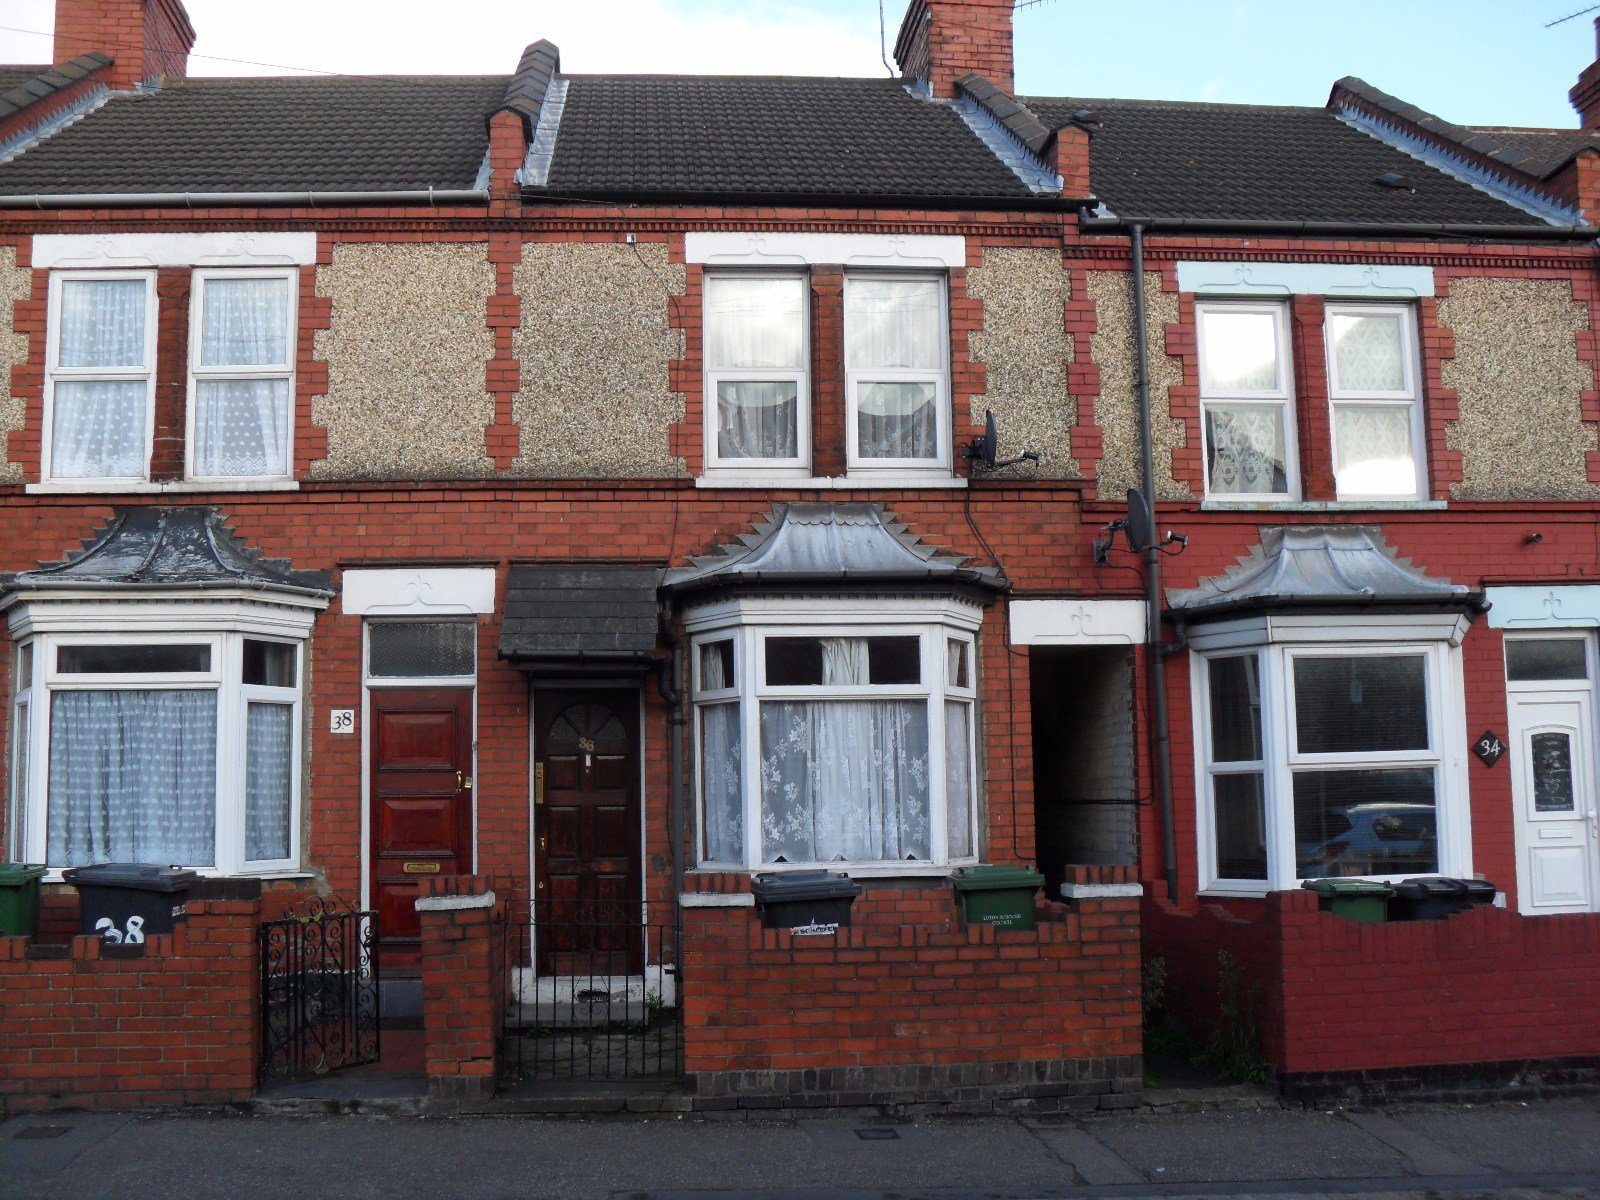 Best 2 Bedroom Terraced House To Rent Selbourne Road Luton Bedfordshire Lu Lu4 8Lp With Pictures